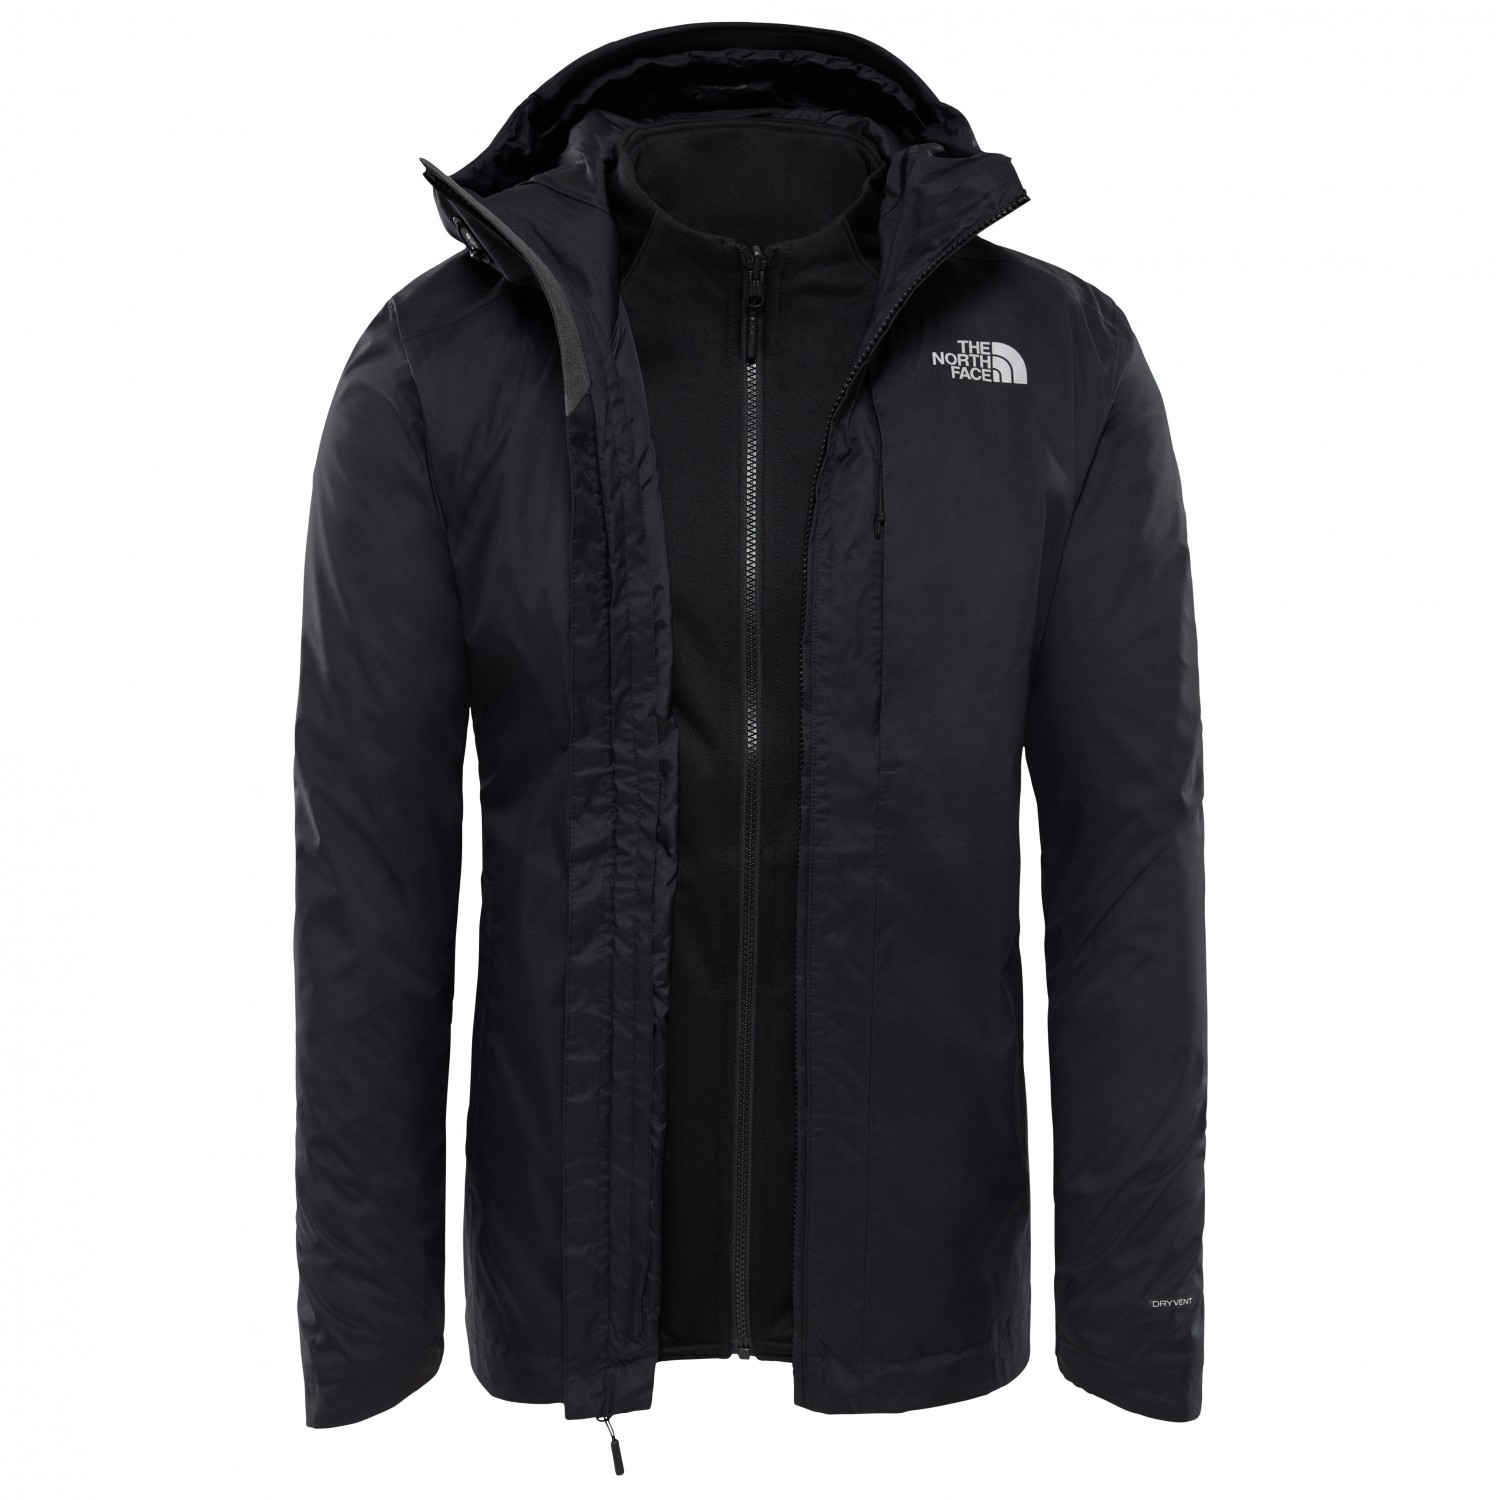 803257af0f6 ... The North Face - Pamiri Triclimate - 3-in-1 jacket ...